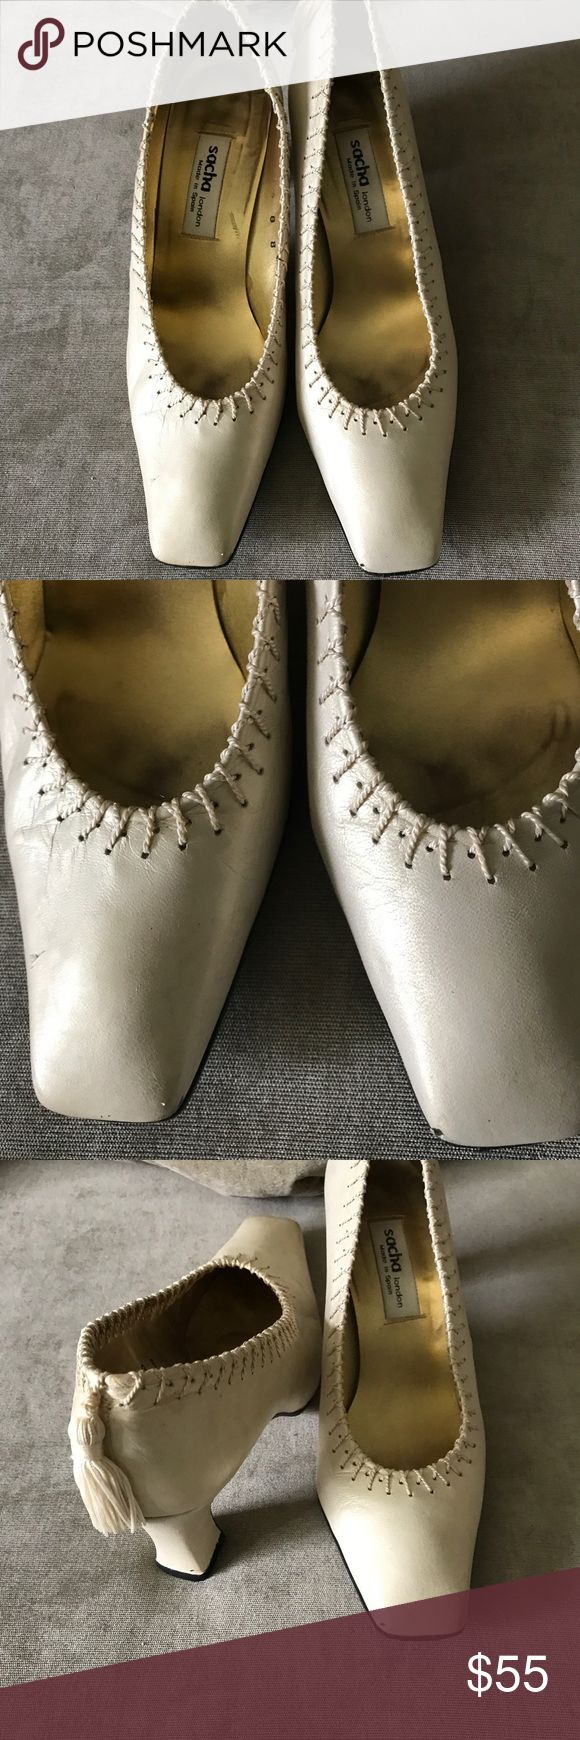 🦋SACHA HEELS Champagne colored Sacha Heels. There is a tassel on back of both shoes. There on one small scratch on the roe on one shoe and on the side of another. Size 8 B Sacha London Shoes Heels